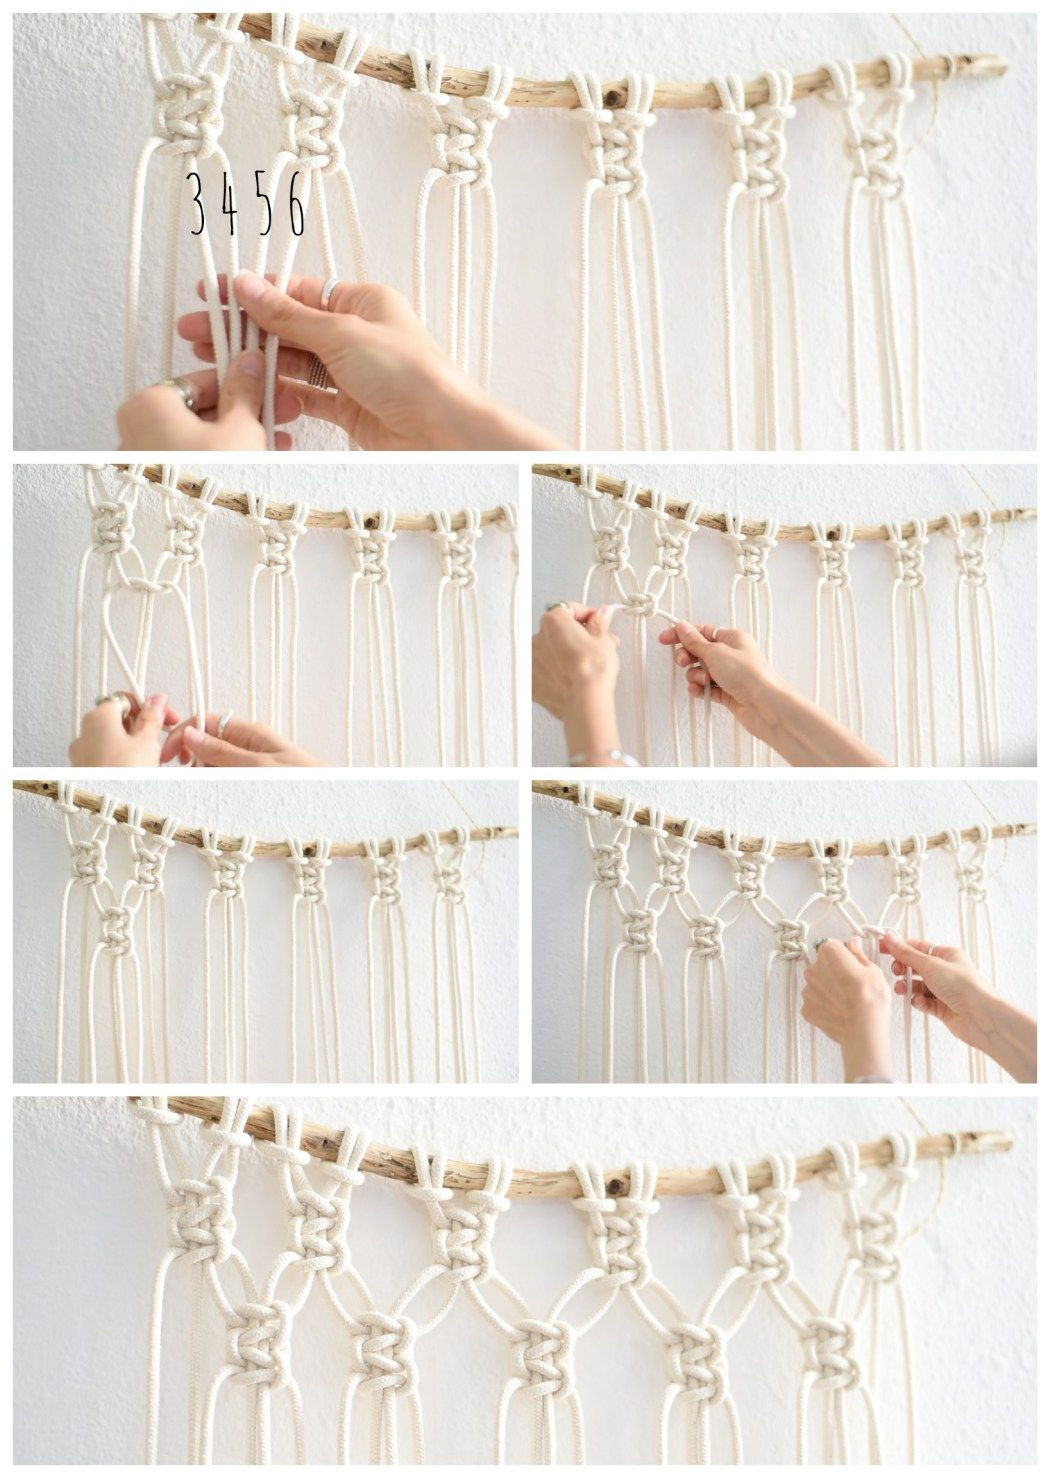 Best ideas about DIY Wall Hangers . Save or Pin Interior Super Easy DIY Macrame Wall Hanging Tutorial Now.